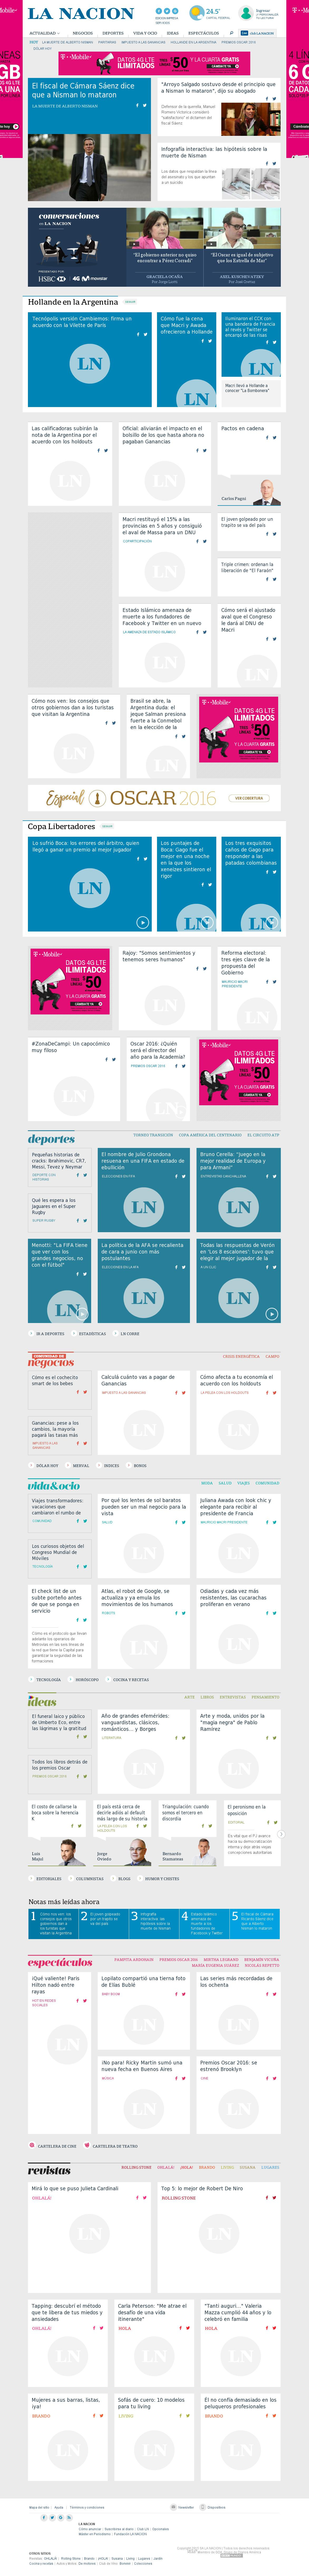 lanacion.com at Thursday Feb. 25, 2016, 3:14 p.m. UTC